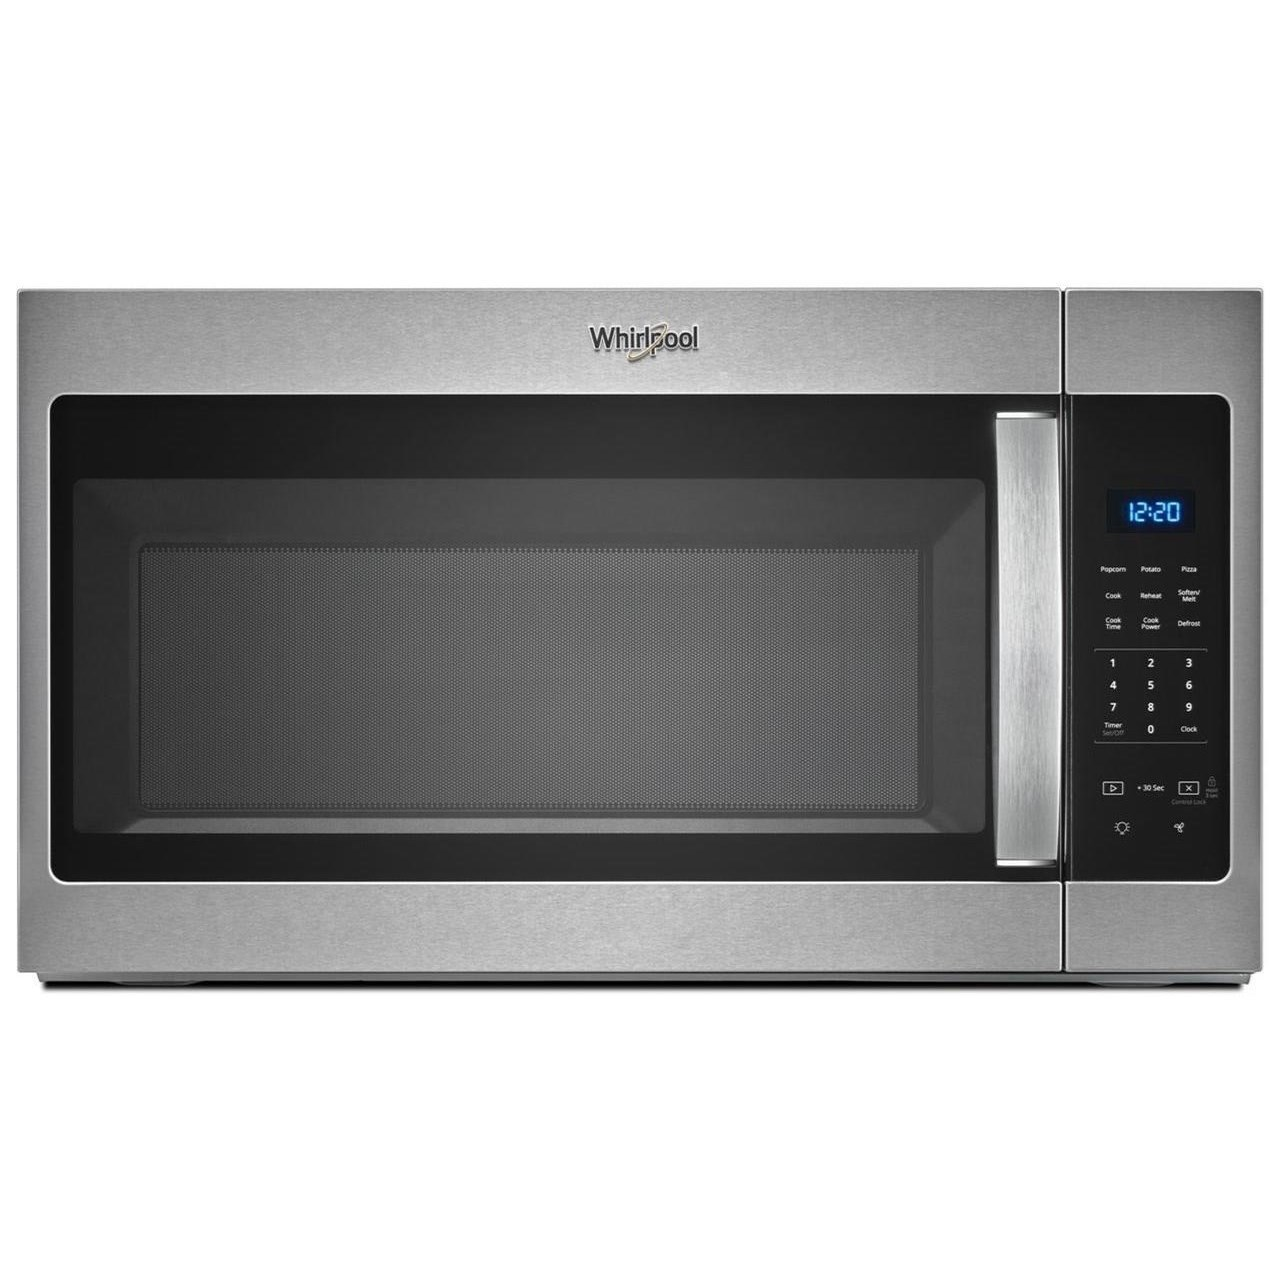 microwaves whirlpool 1 7 cu ft microwave hood combination with electronic touch controls by whirlpool at furniture and appliancemart